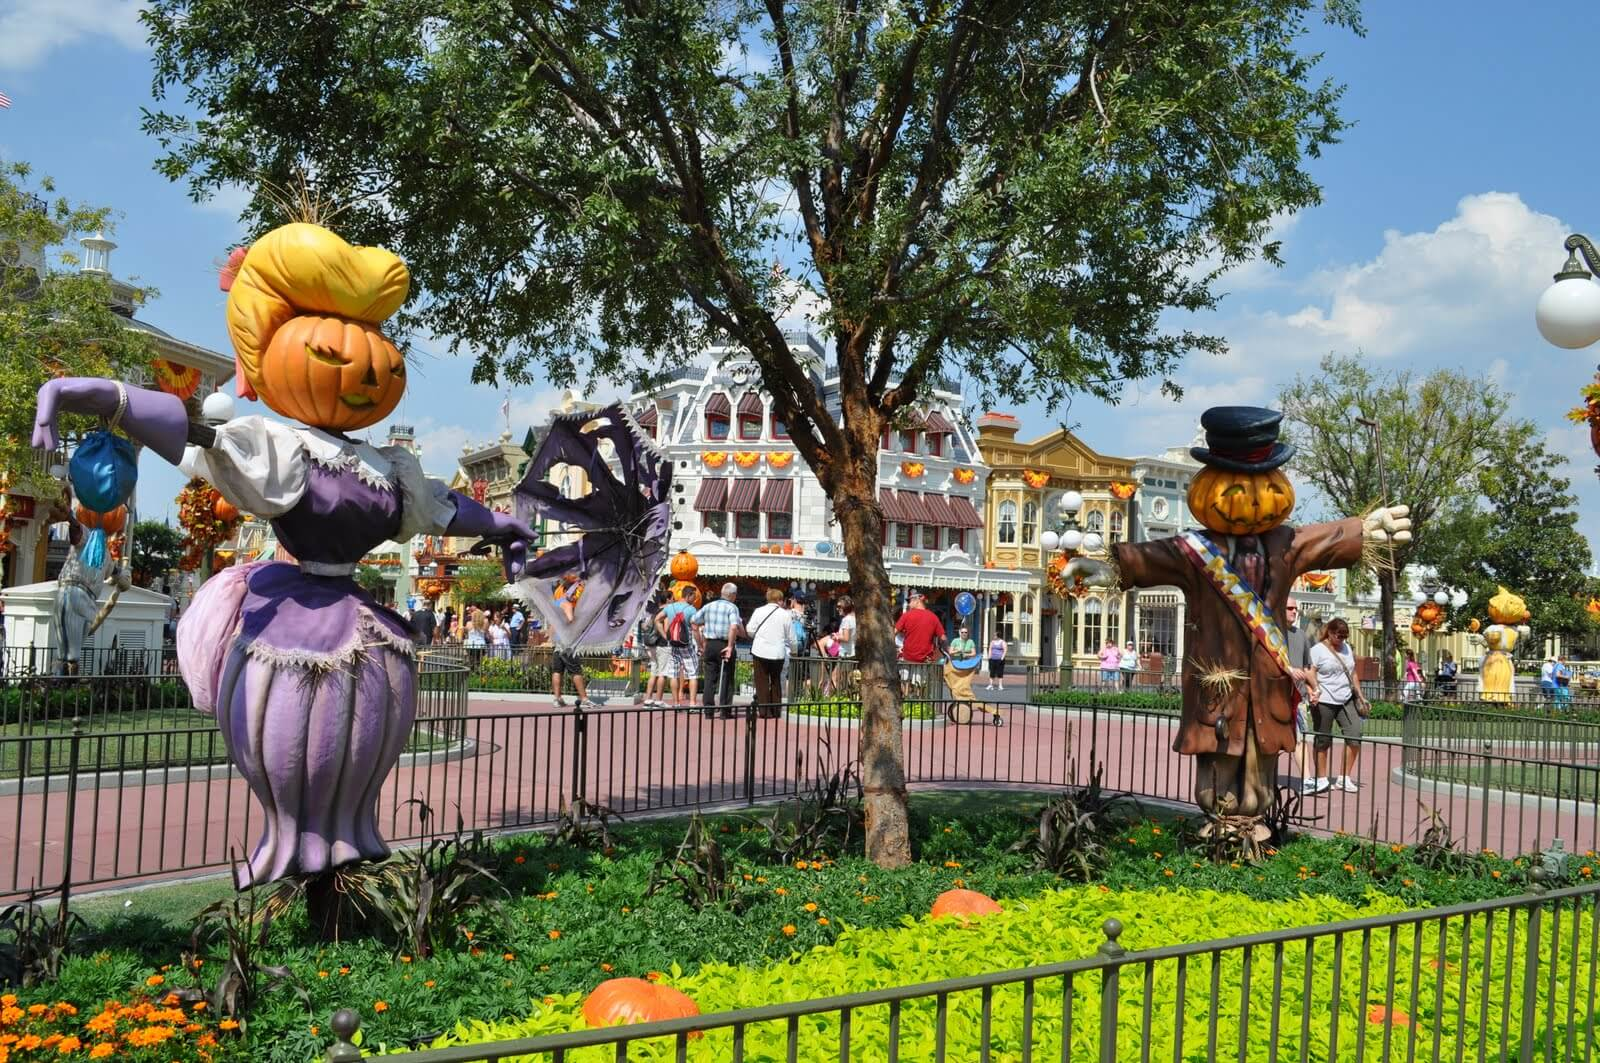 Fall Packing Tips for the Theme Parks